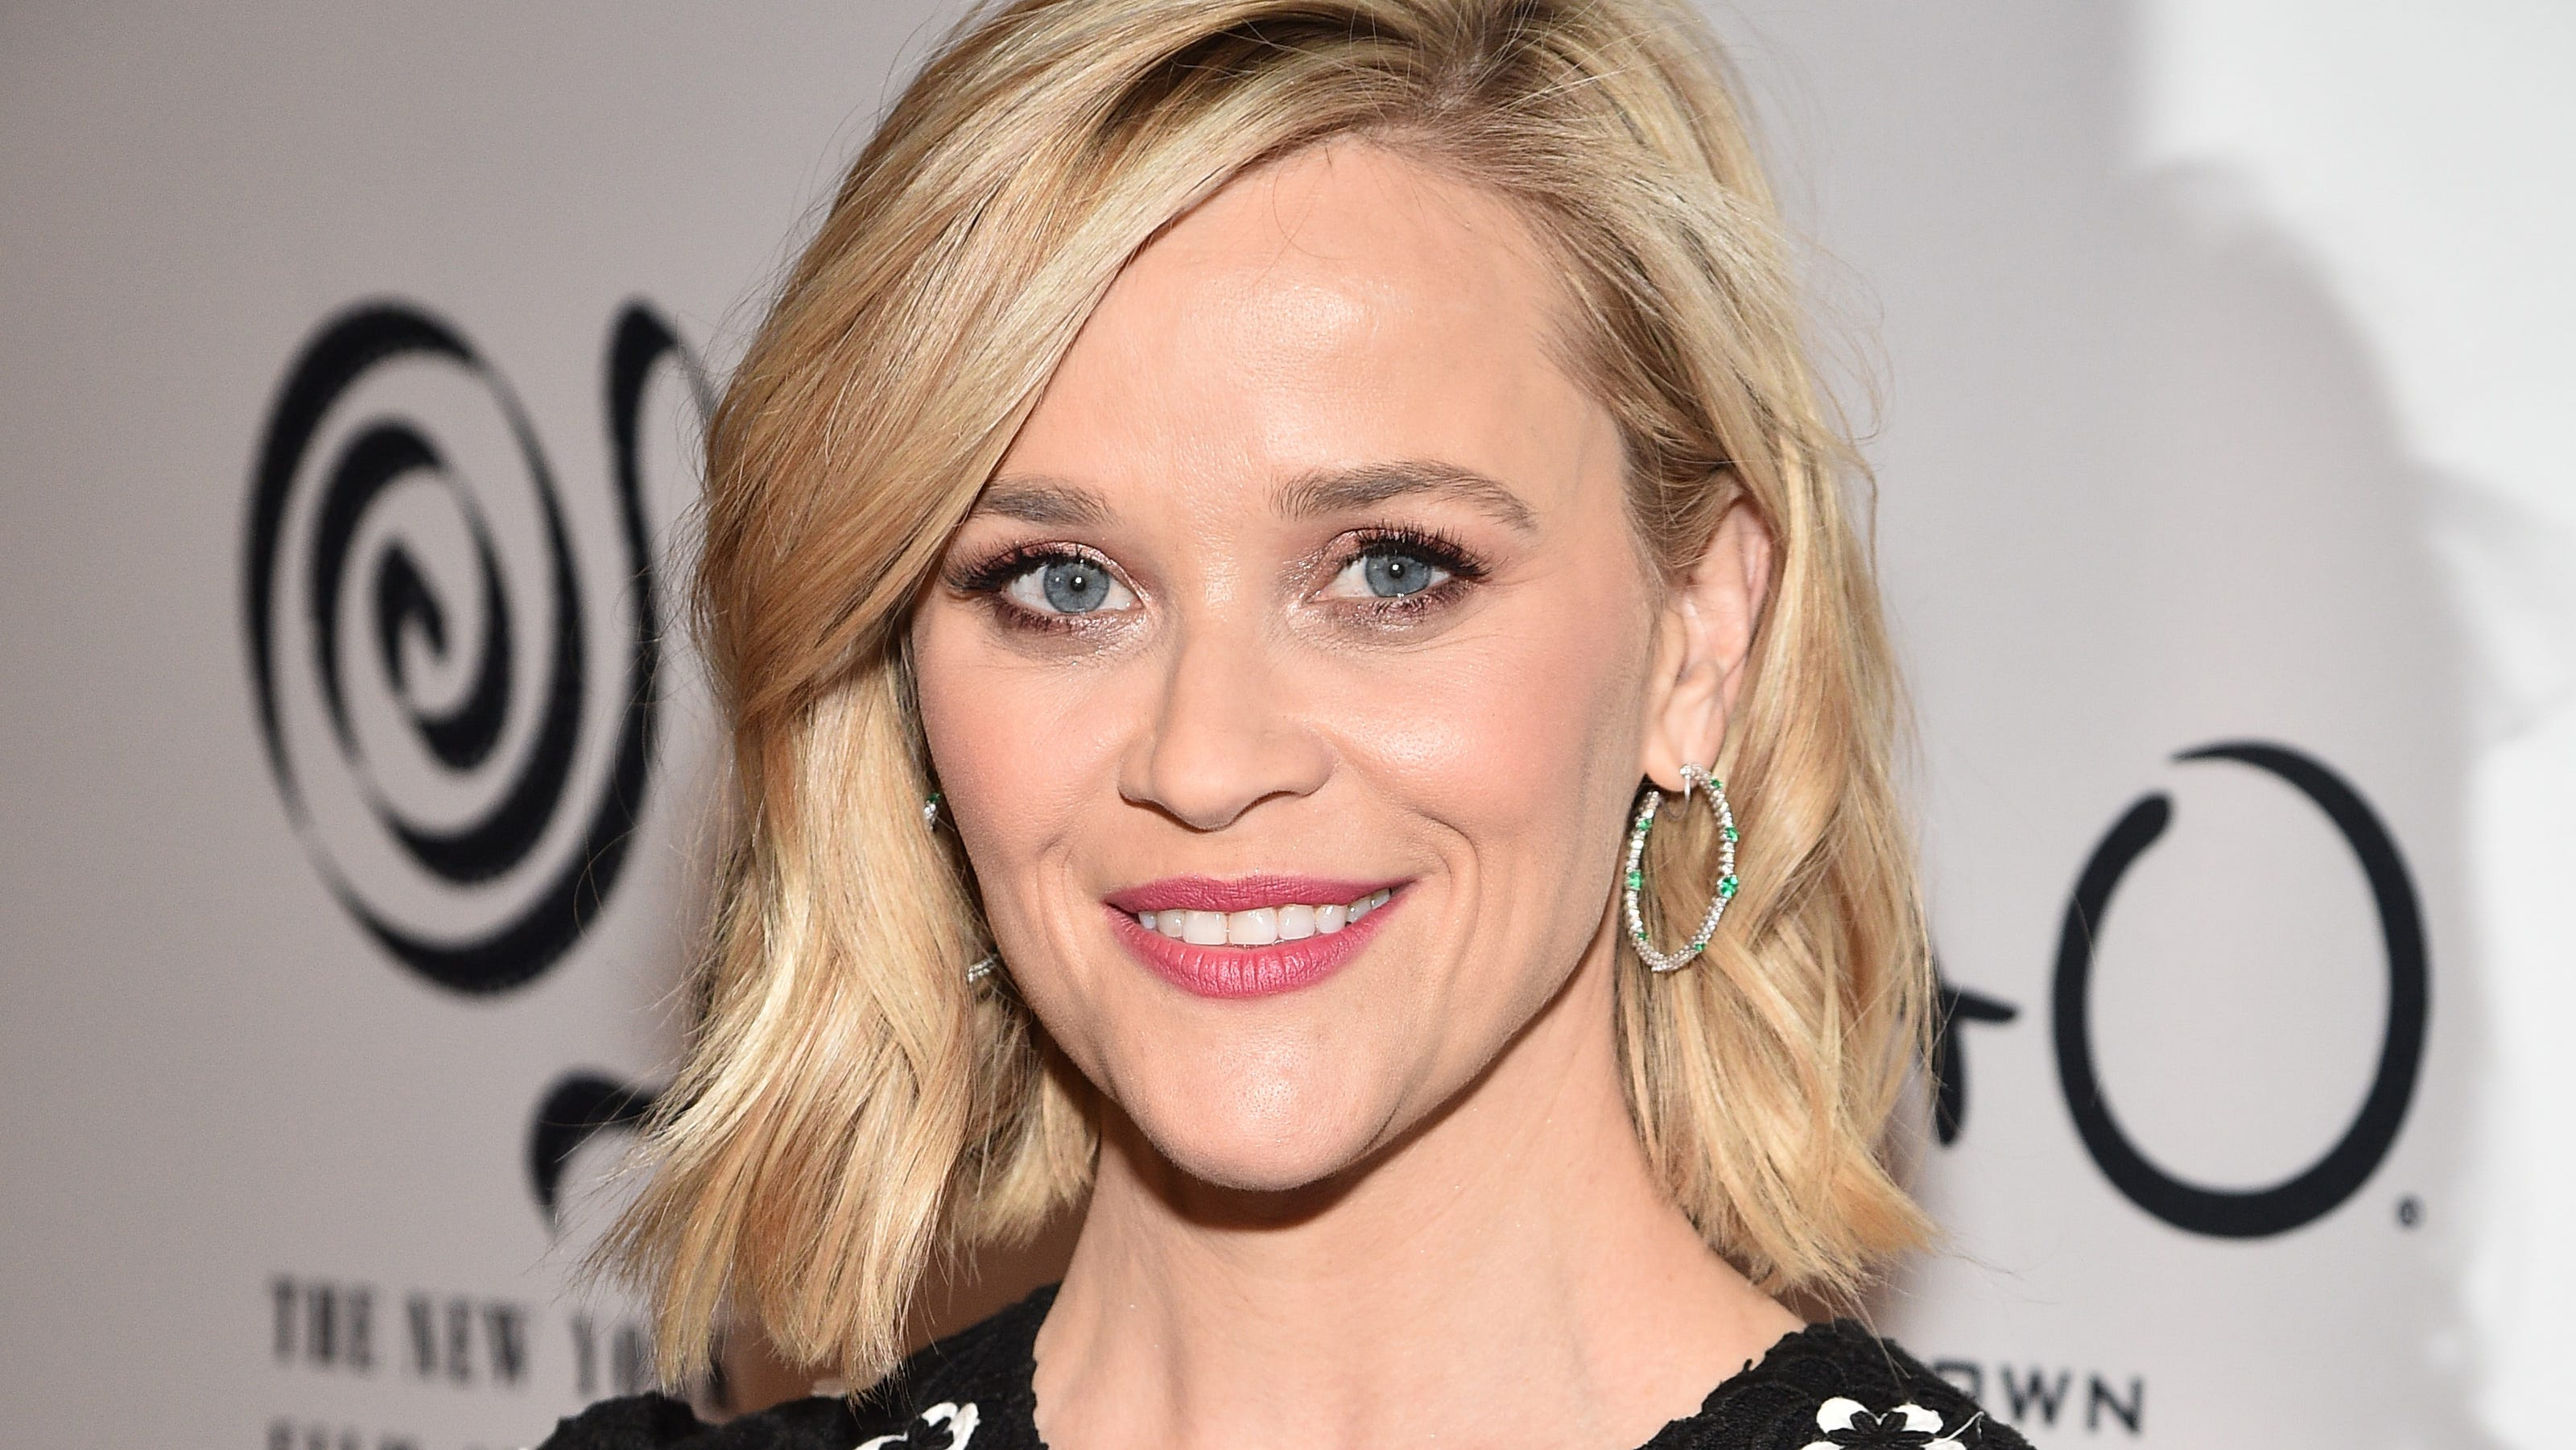 Access here alternative investment news about Reese Witherspoon: Hello Sunshine Sold In Blackstone-backed Venture